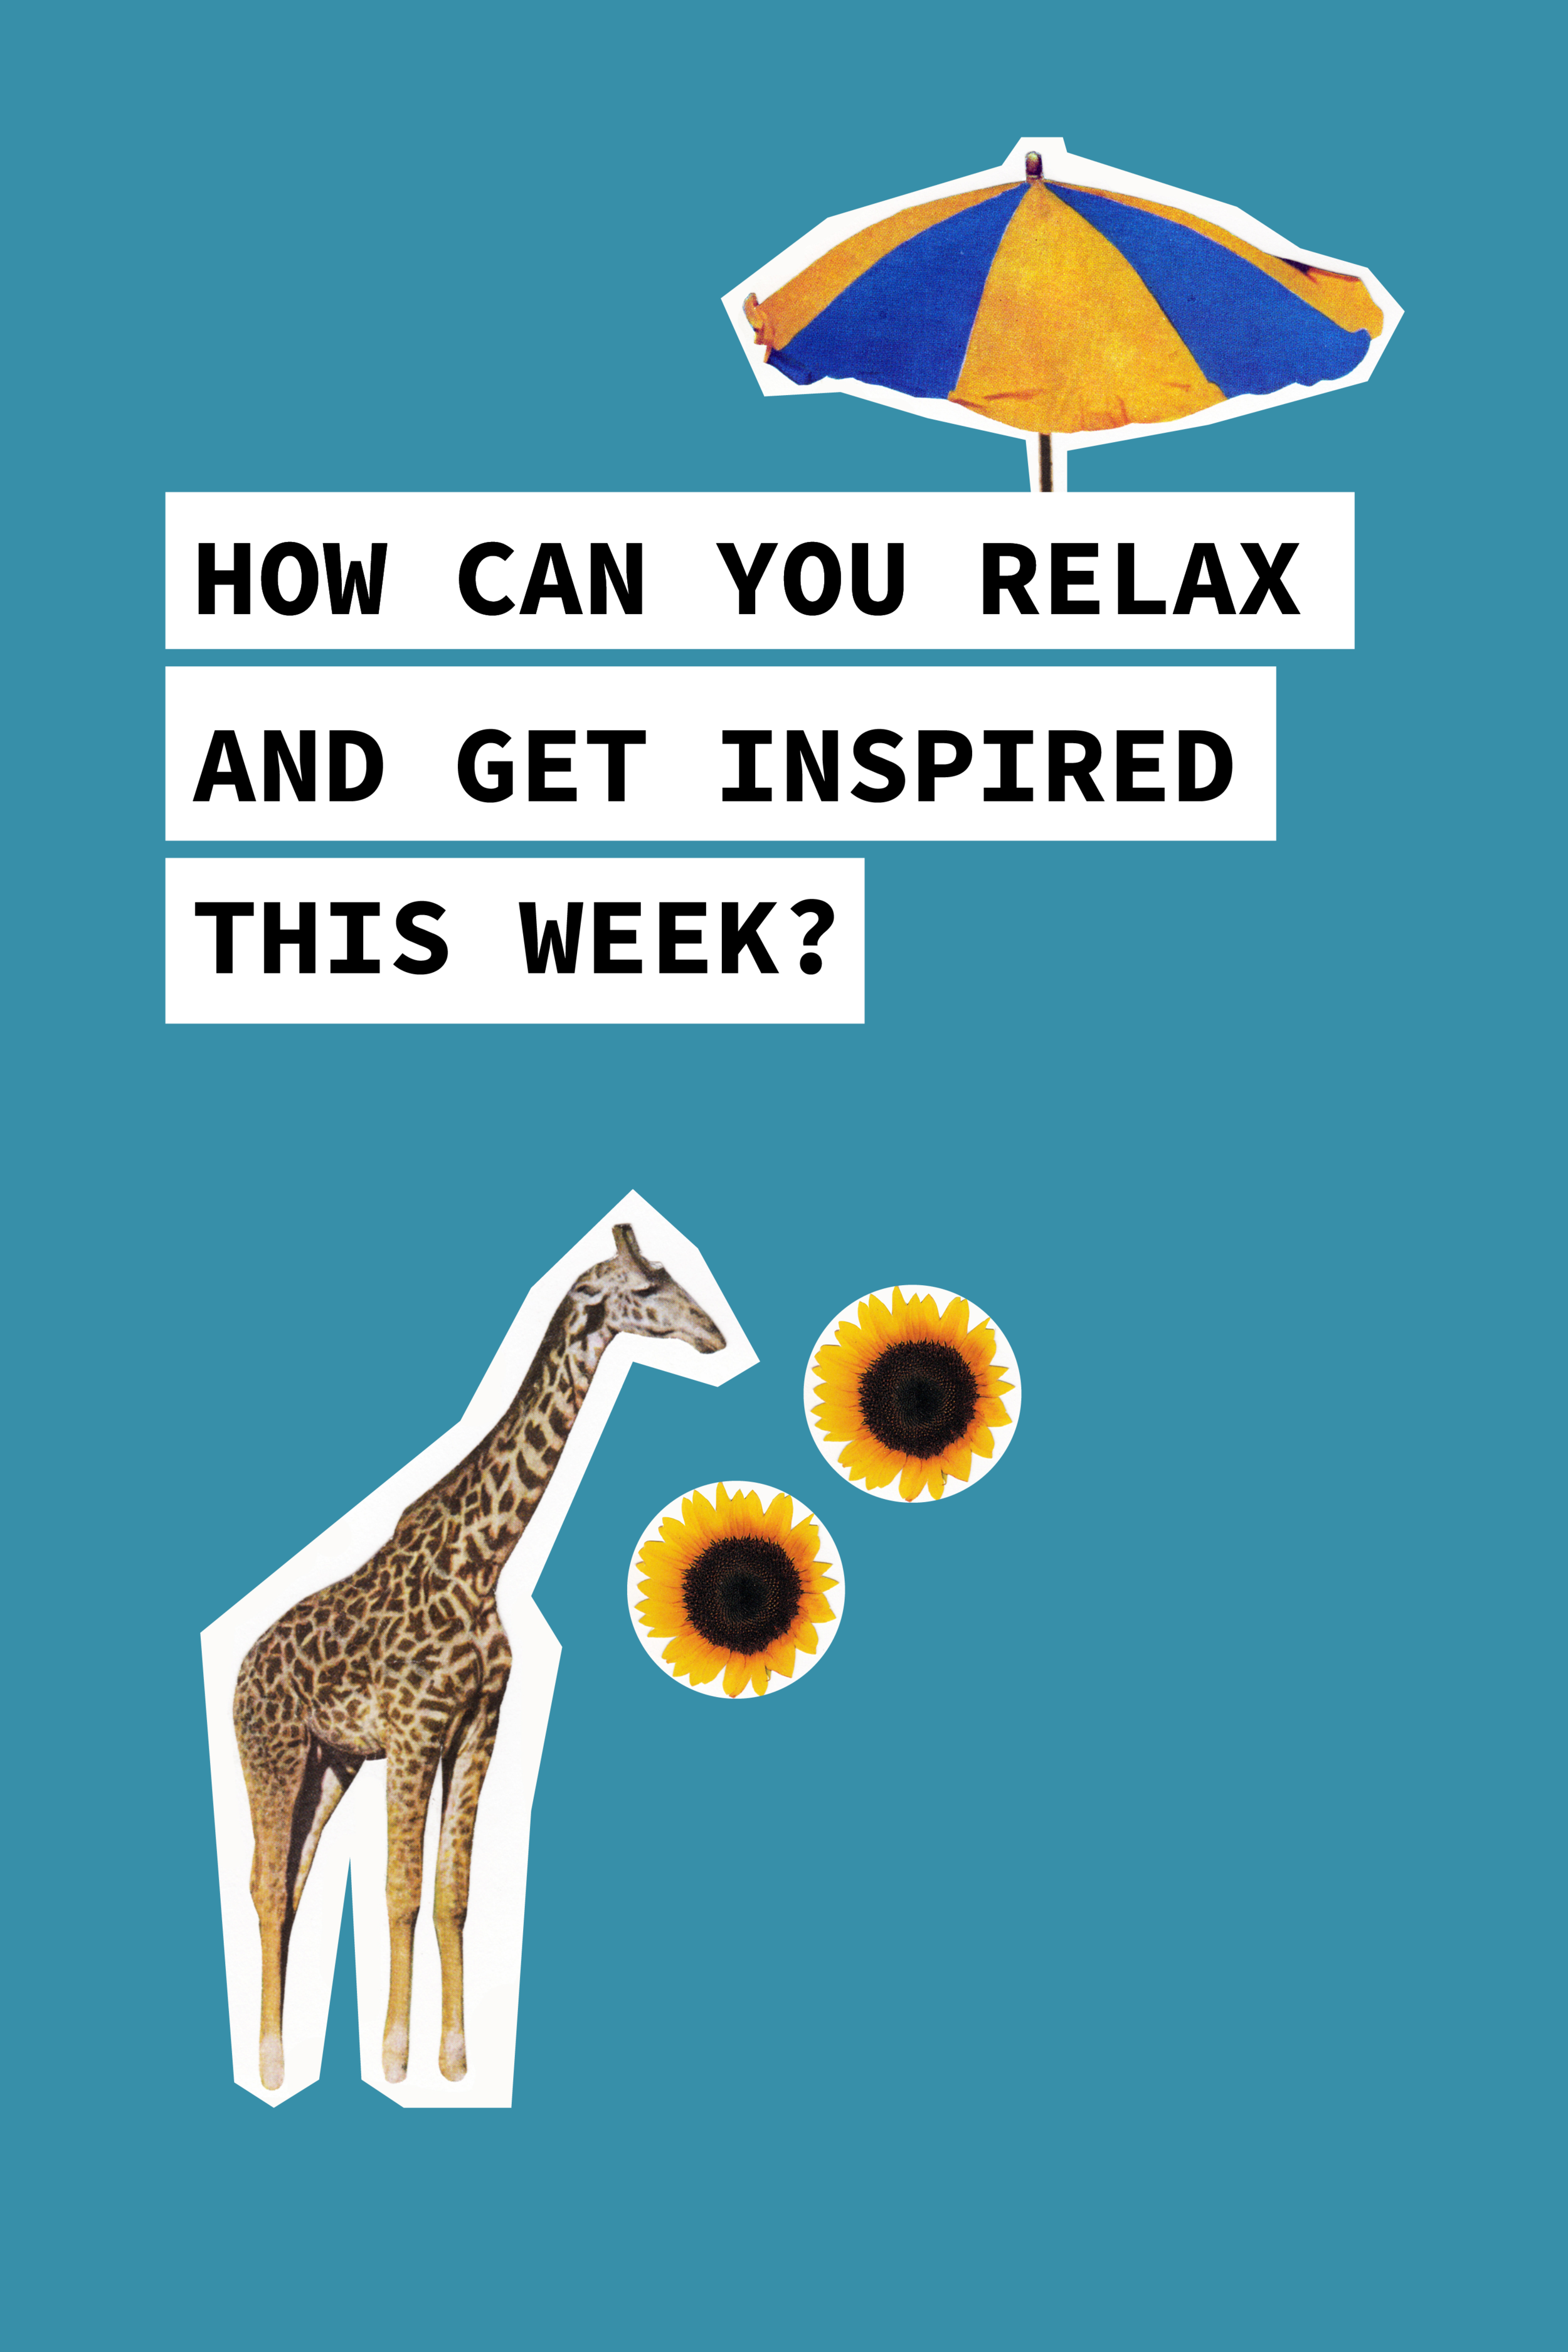 How Can You Relax And Get Inspired This Week?